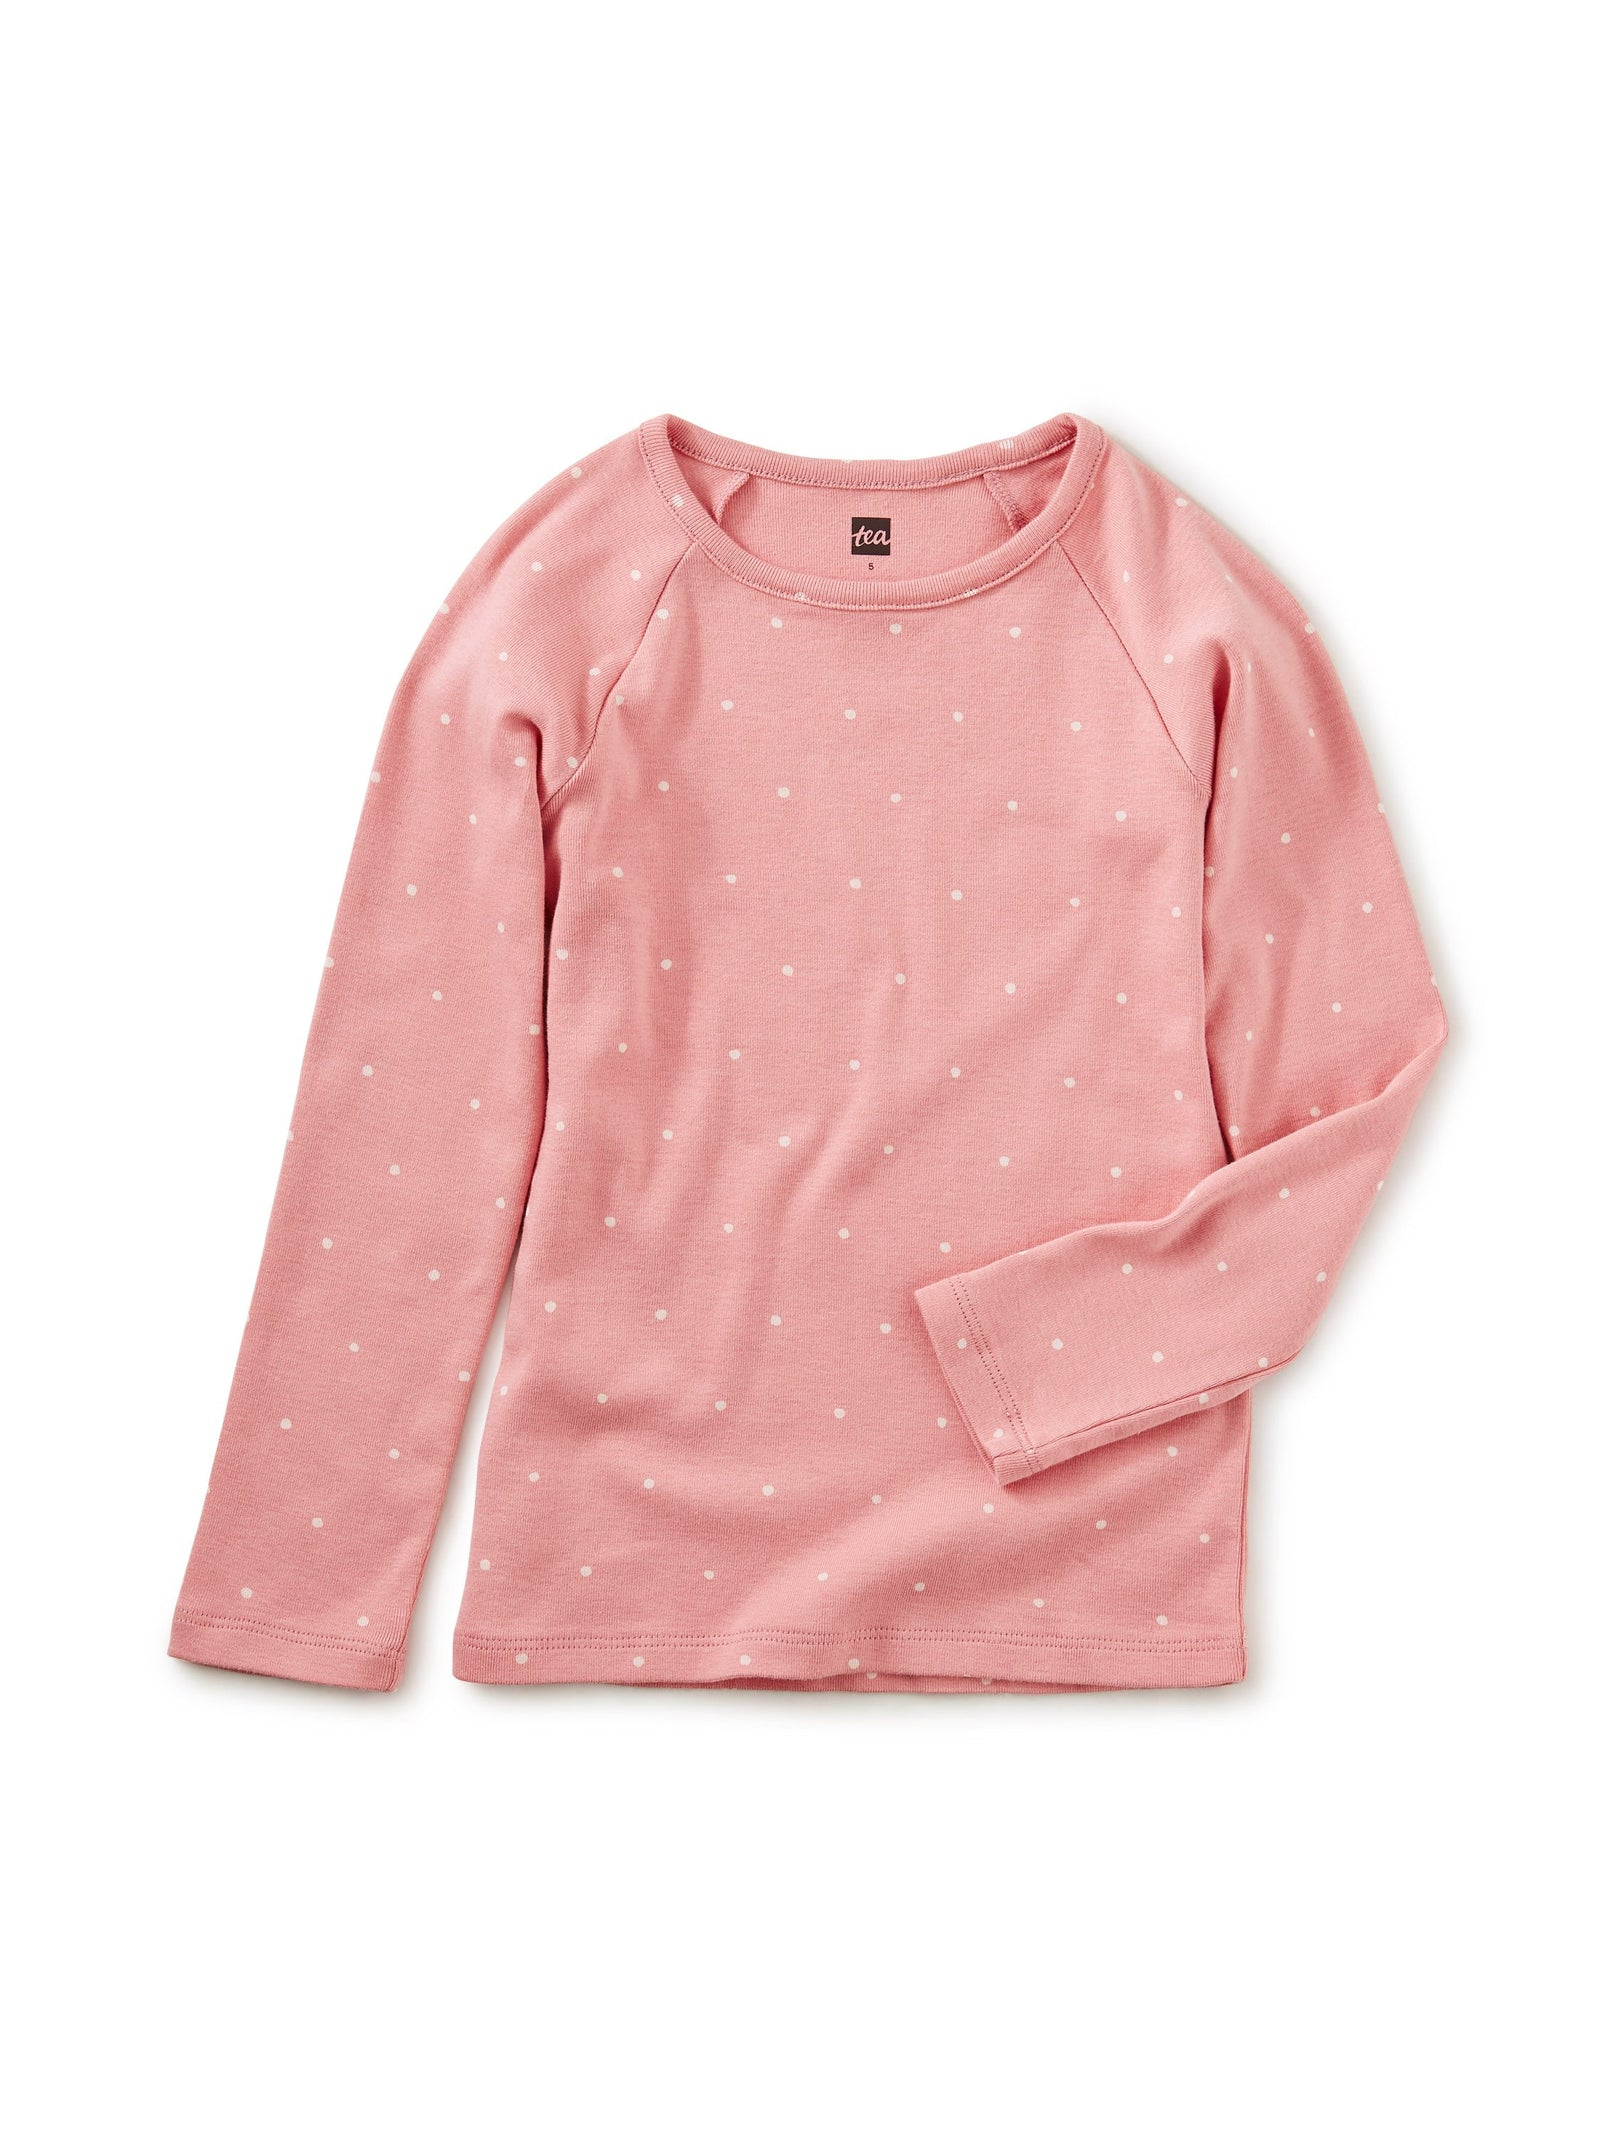 Little tea collection girl 2 Dot Purity Tee in Mauve Glow